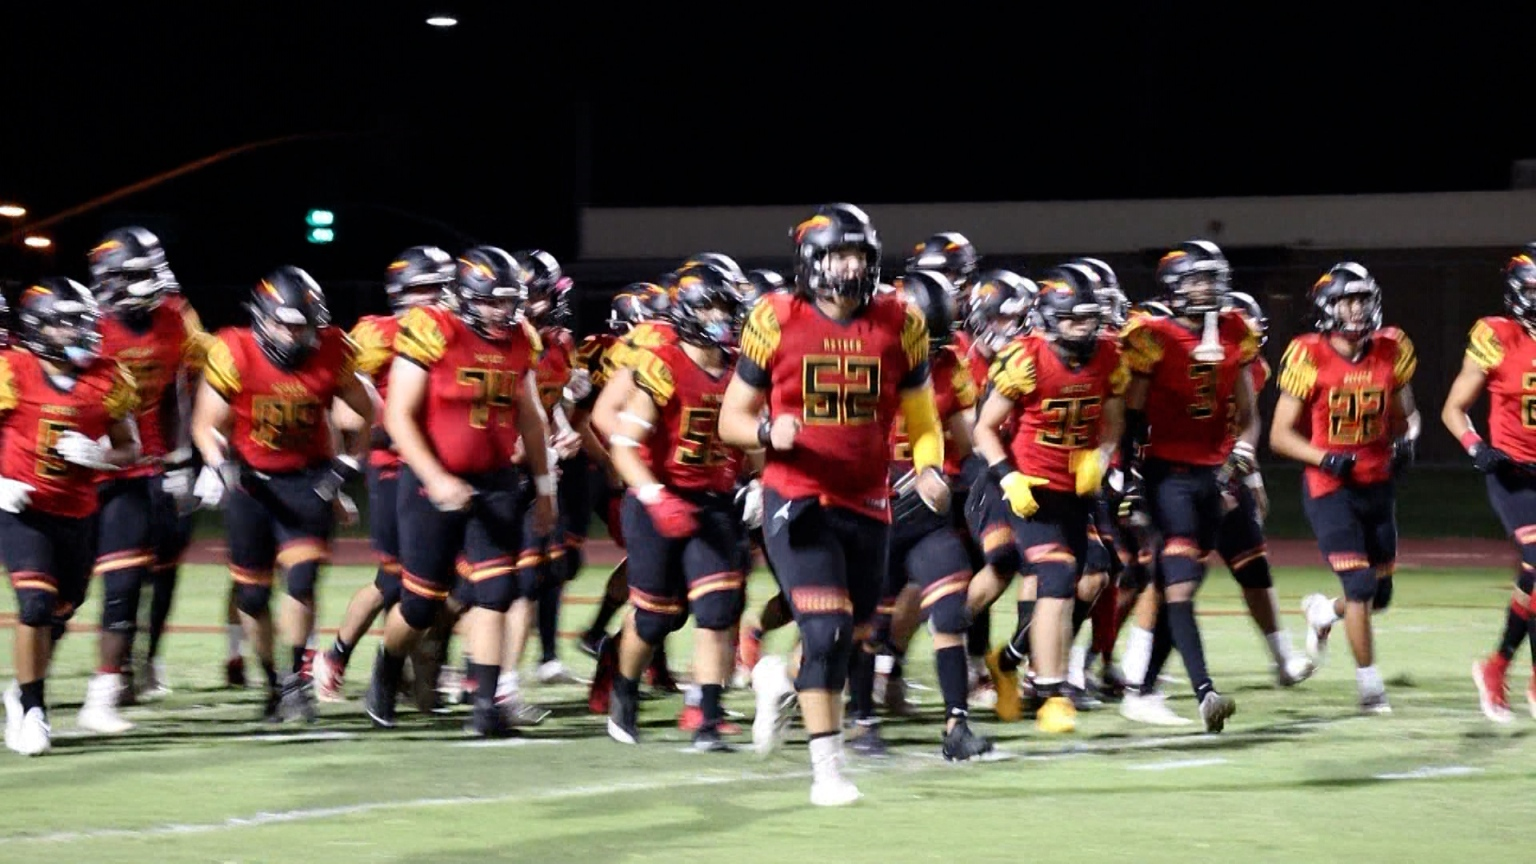 Heightened Law Enforcement Presence Planned For Palm Desert-La Quinta Game